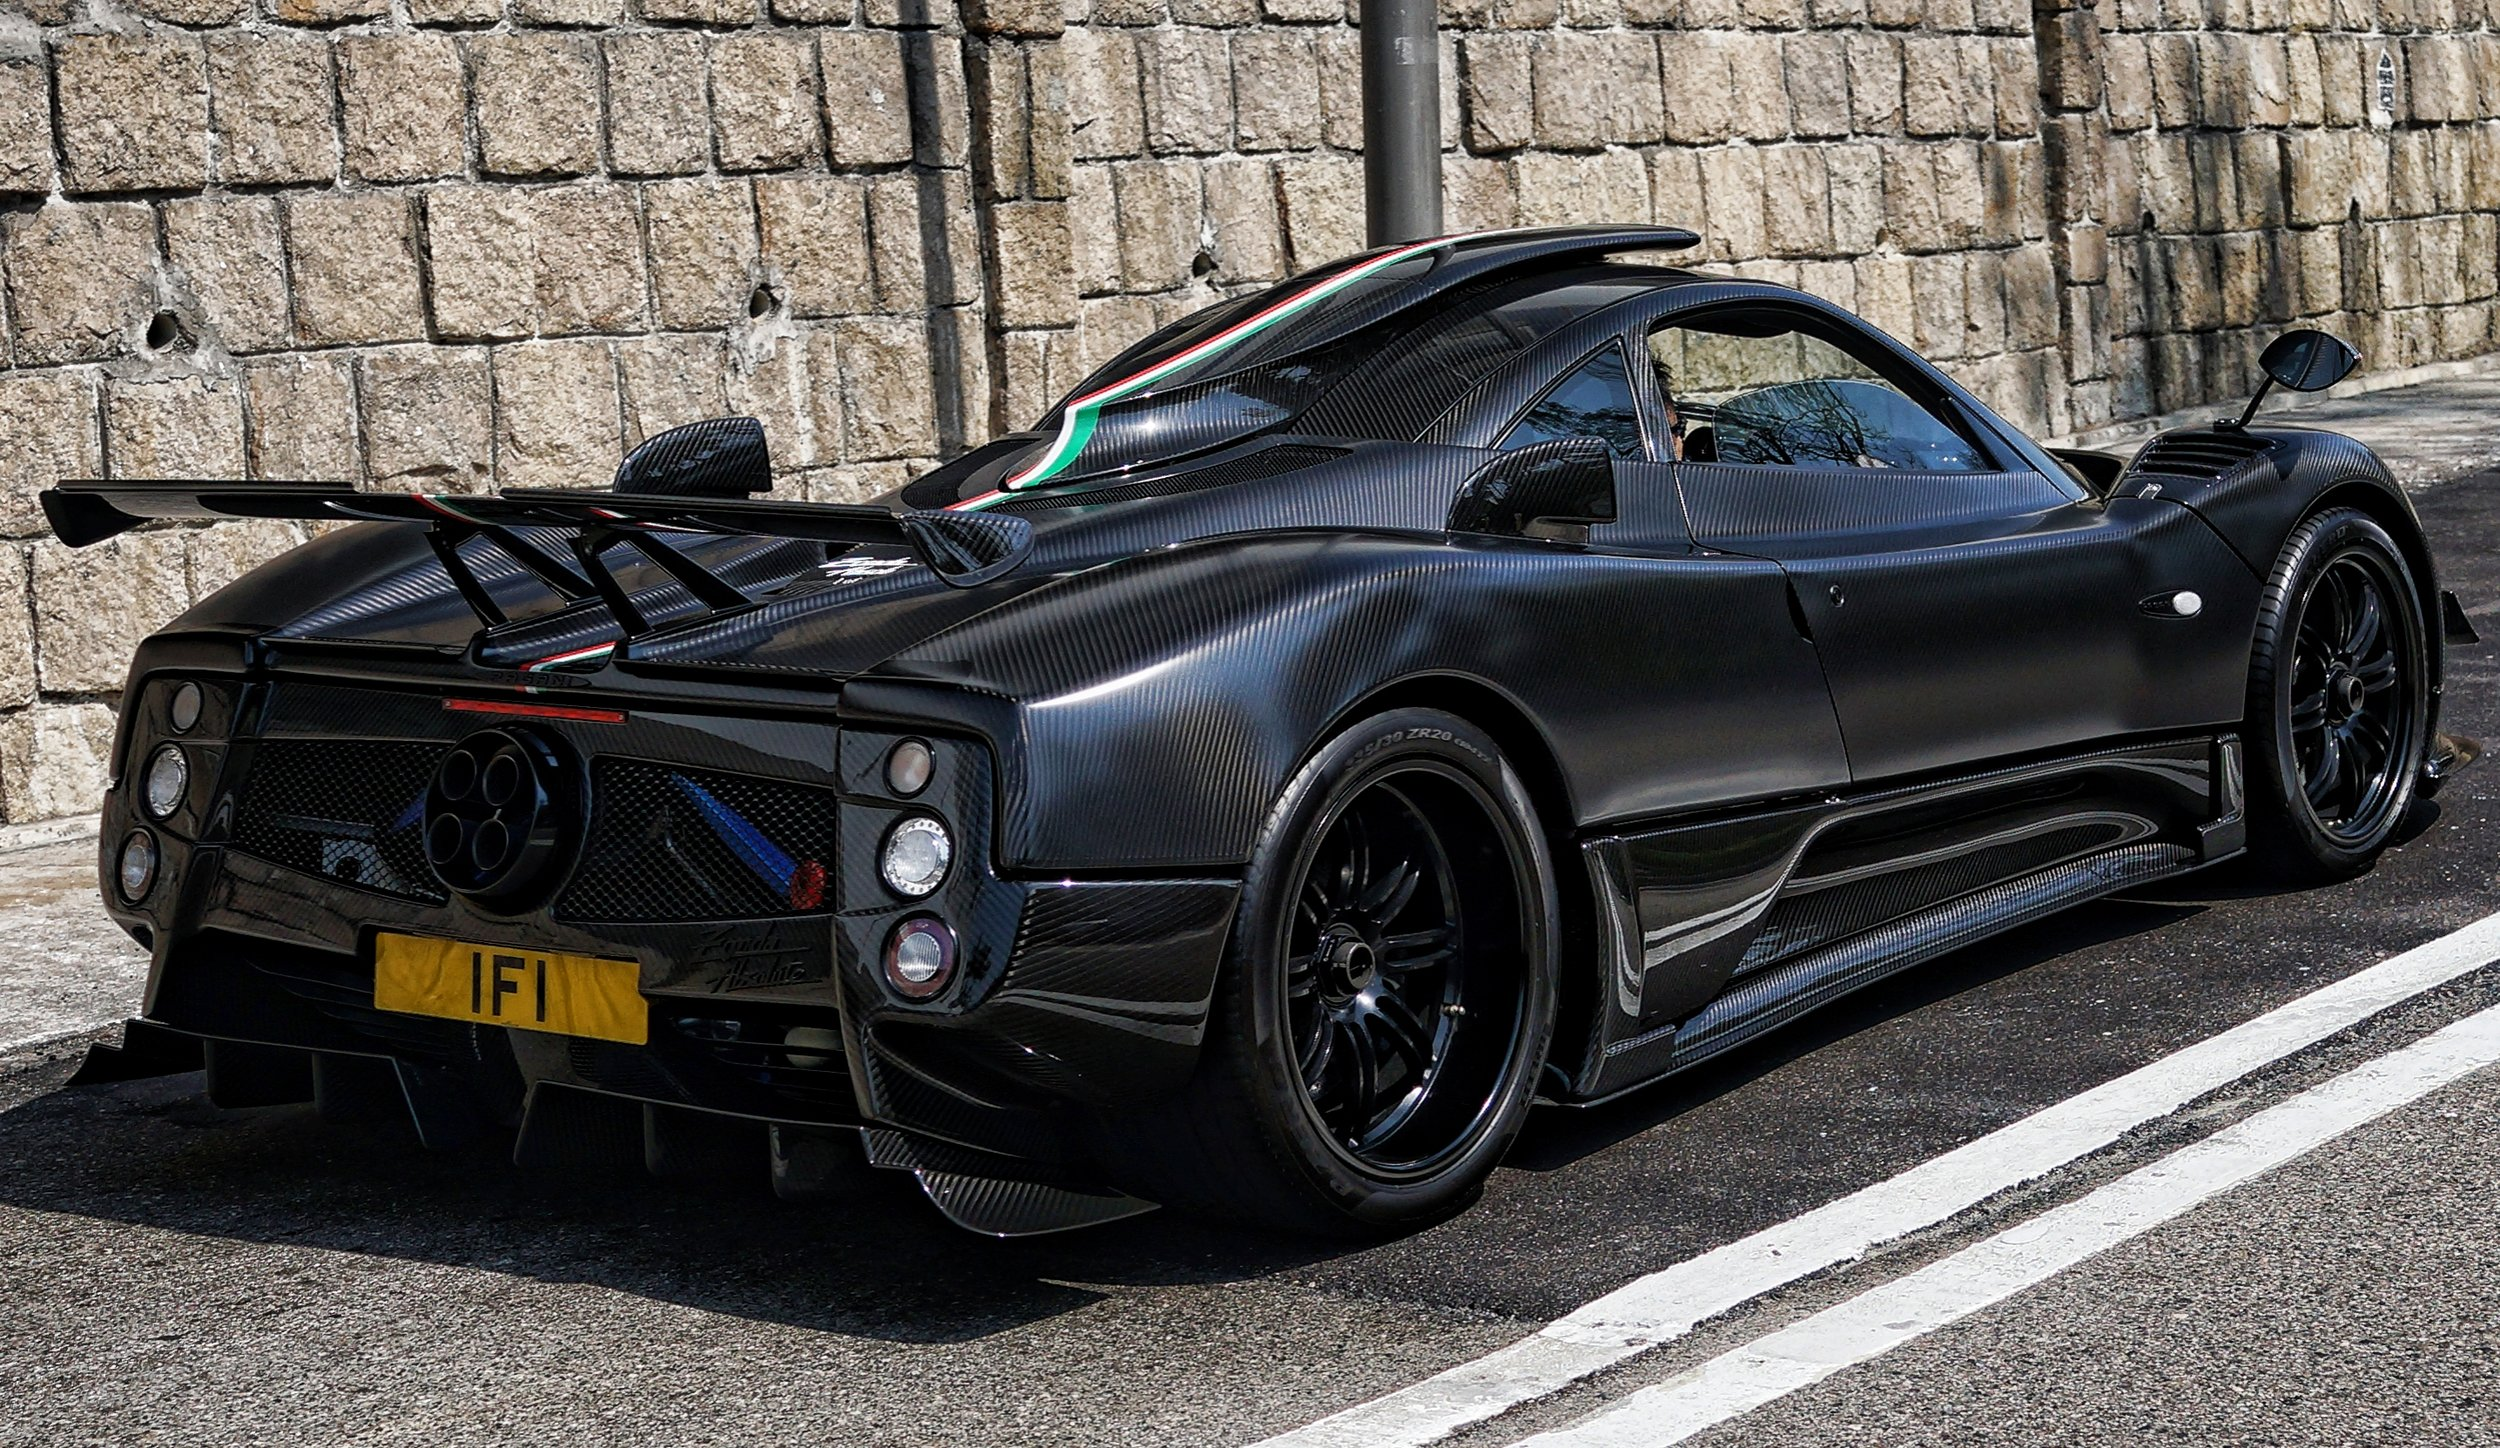 Pagani, hand made in Italy, about US$4 Million, Hong Kong car culture at it's finest -